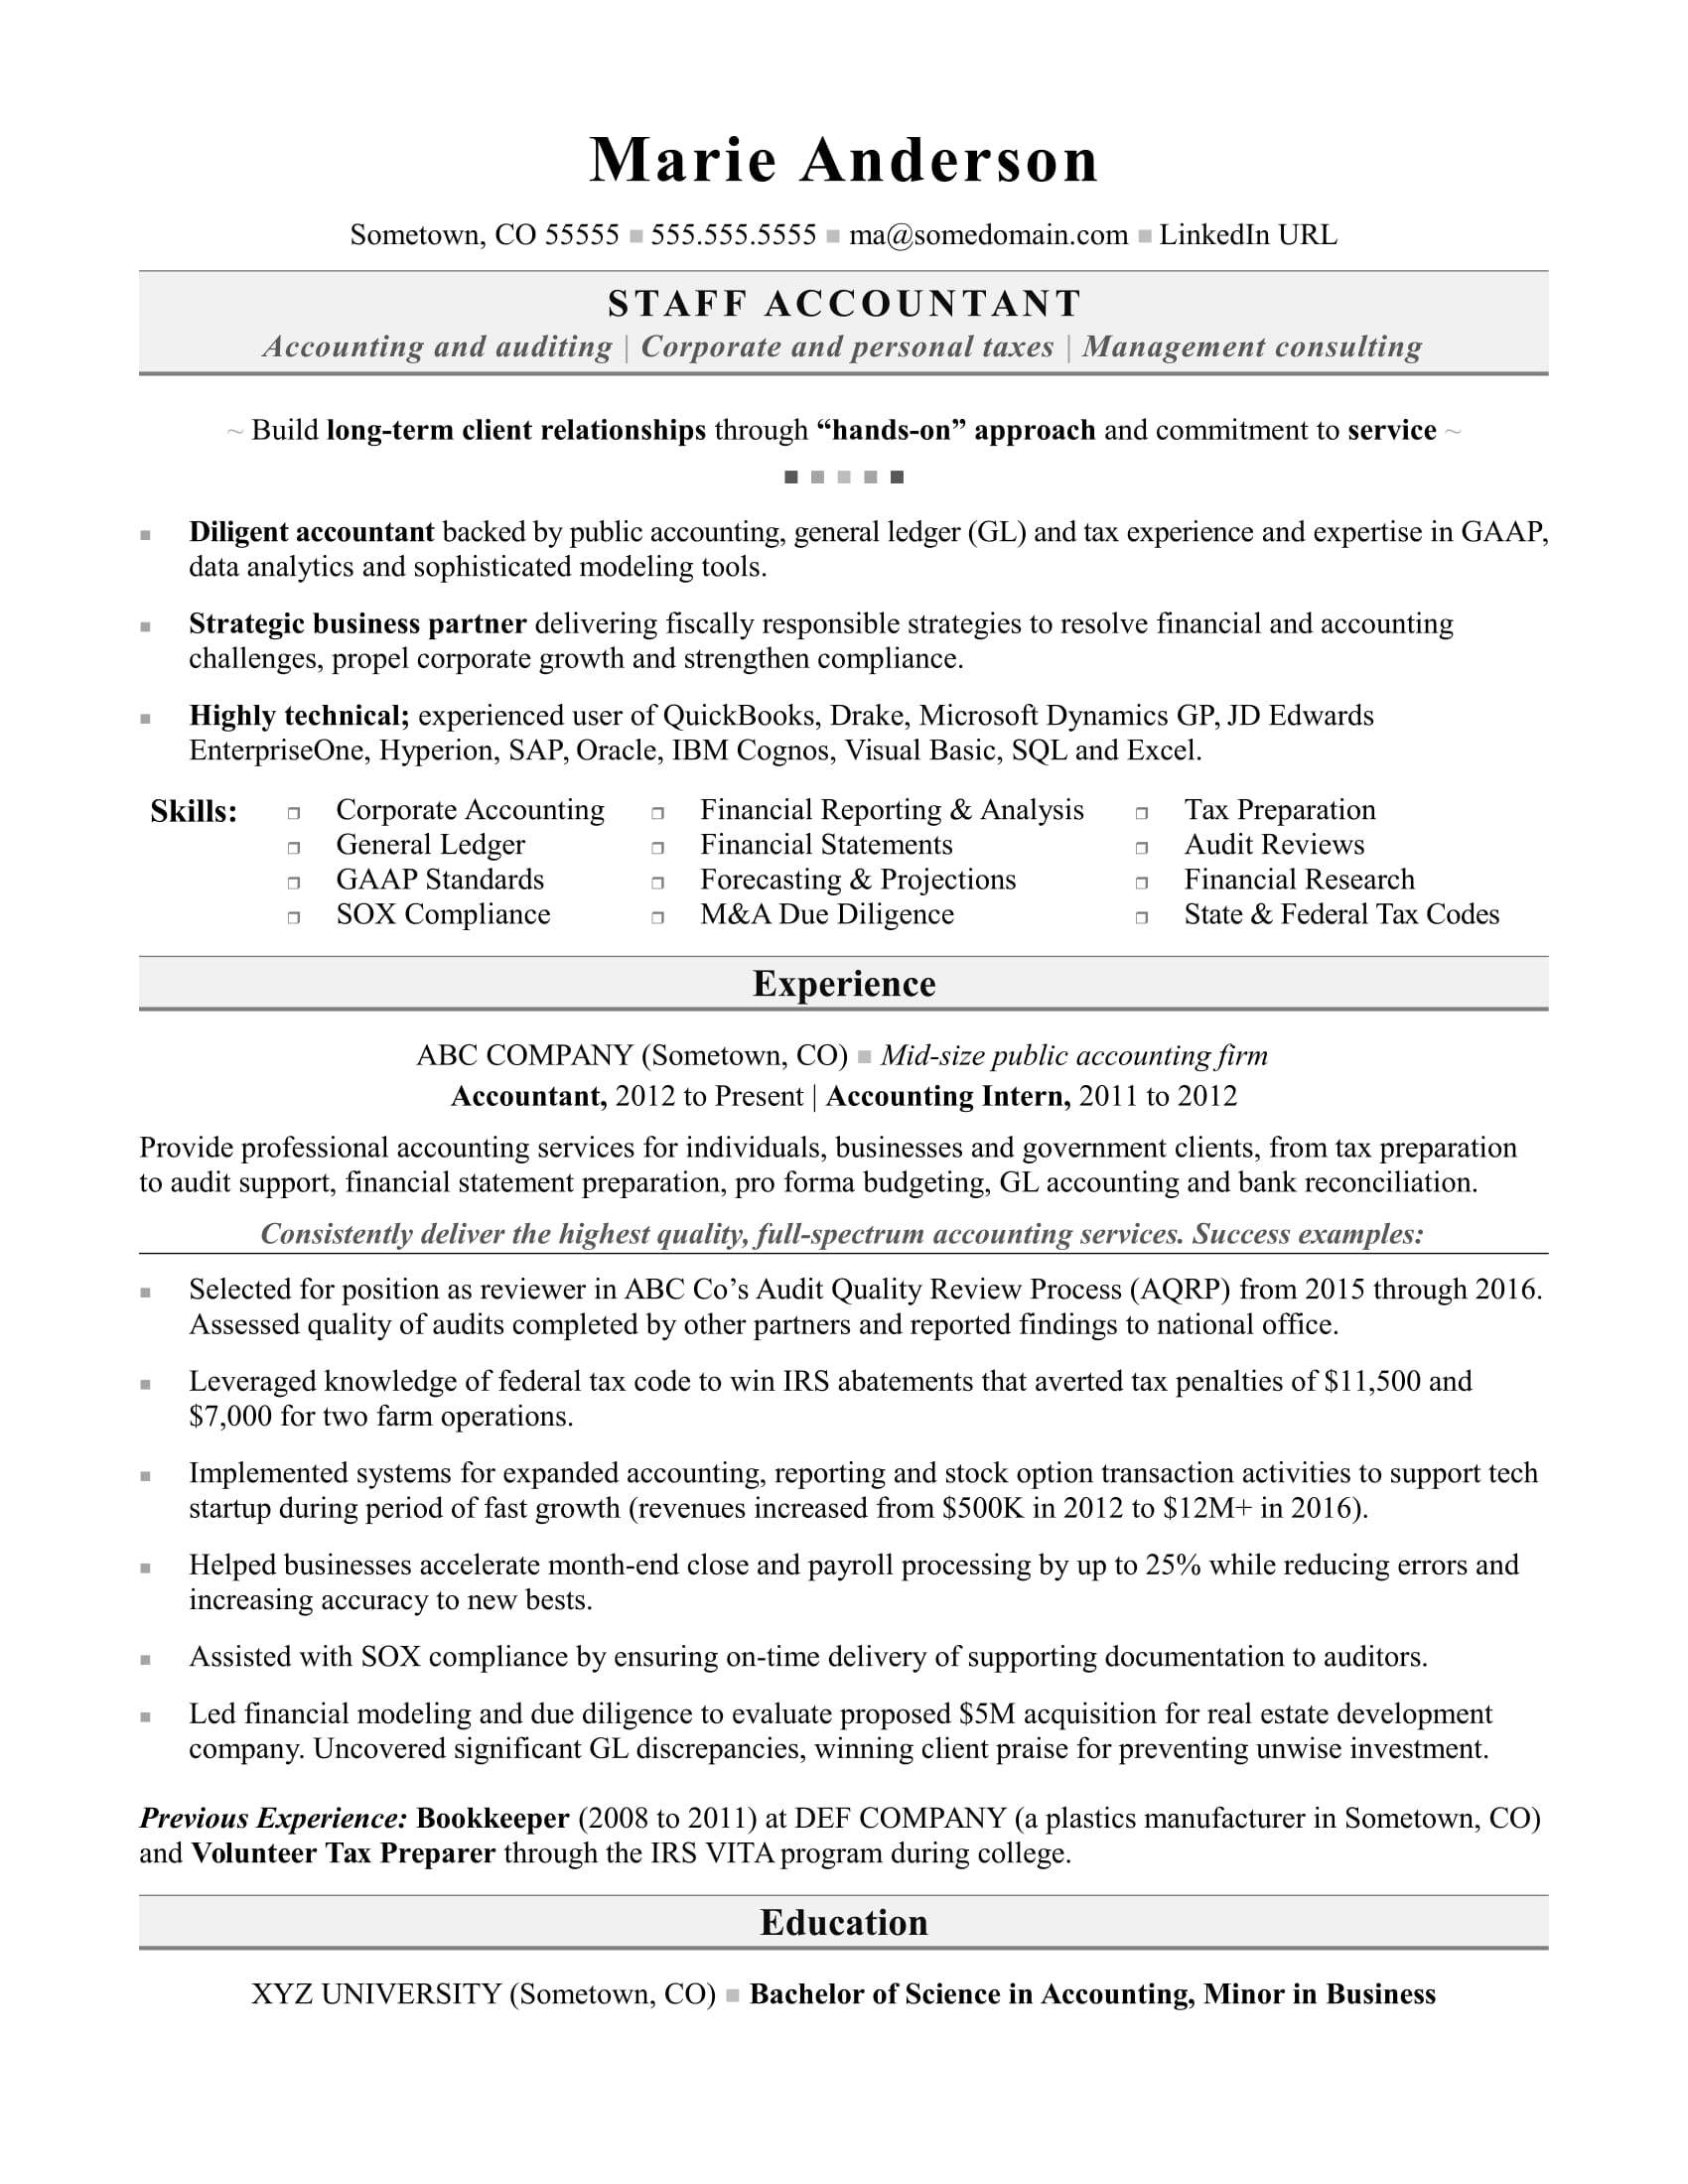 resume samples for accountant in the philippines